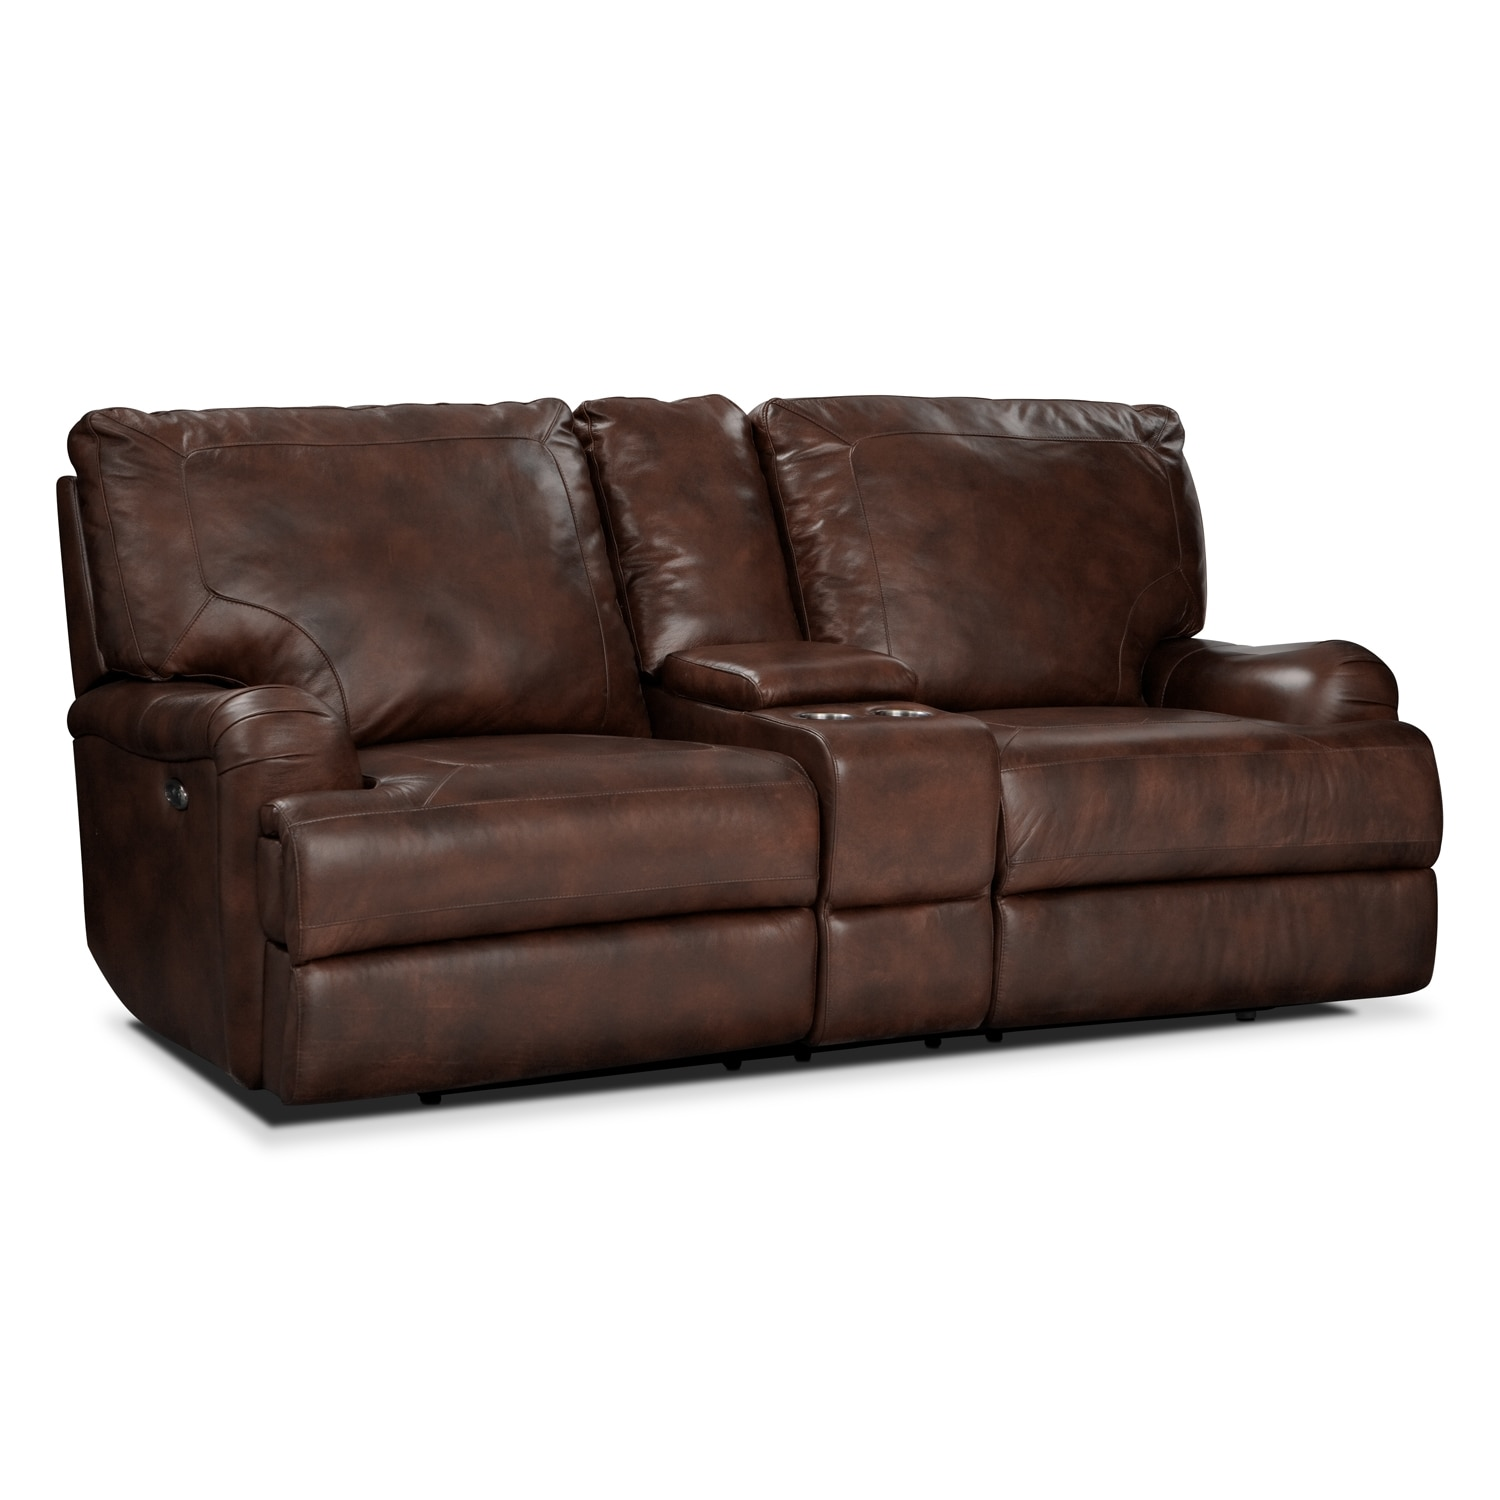 Living Room Furniture - Kingsway Power Reclining Loveseat with Console